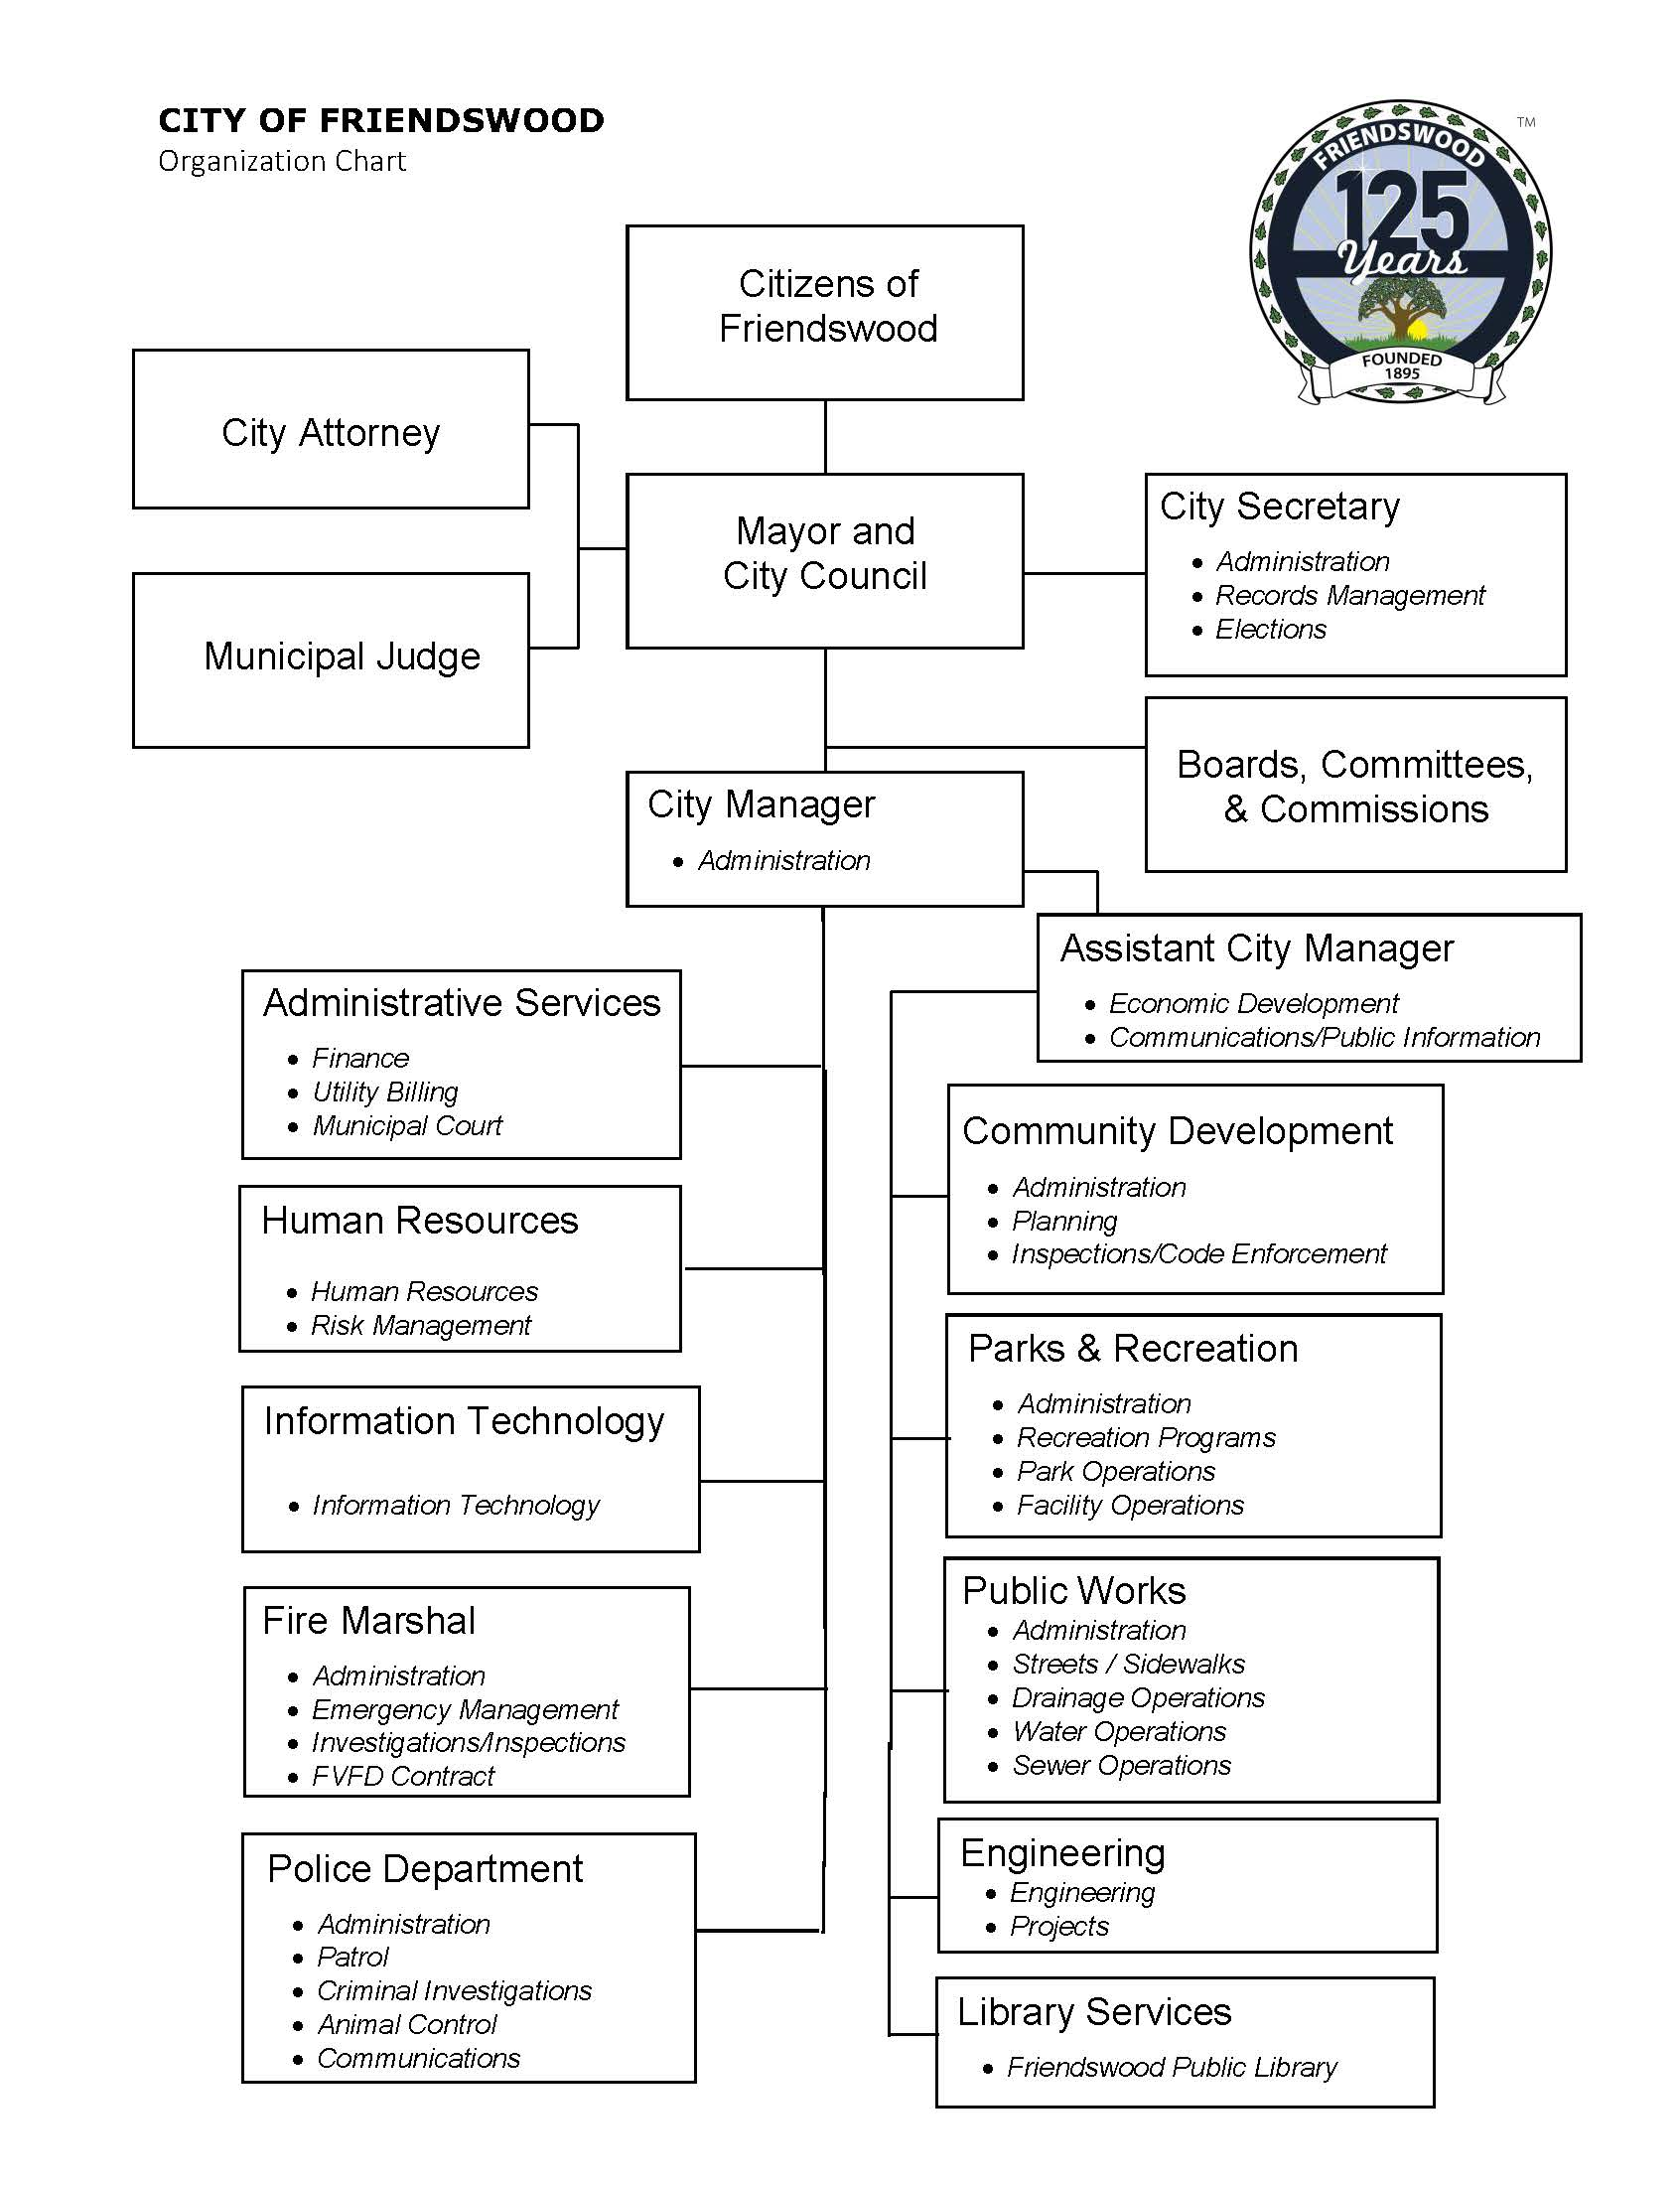 City of Friendswood Organization Chart